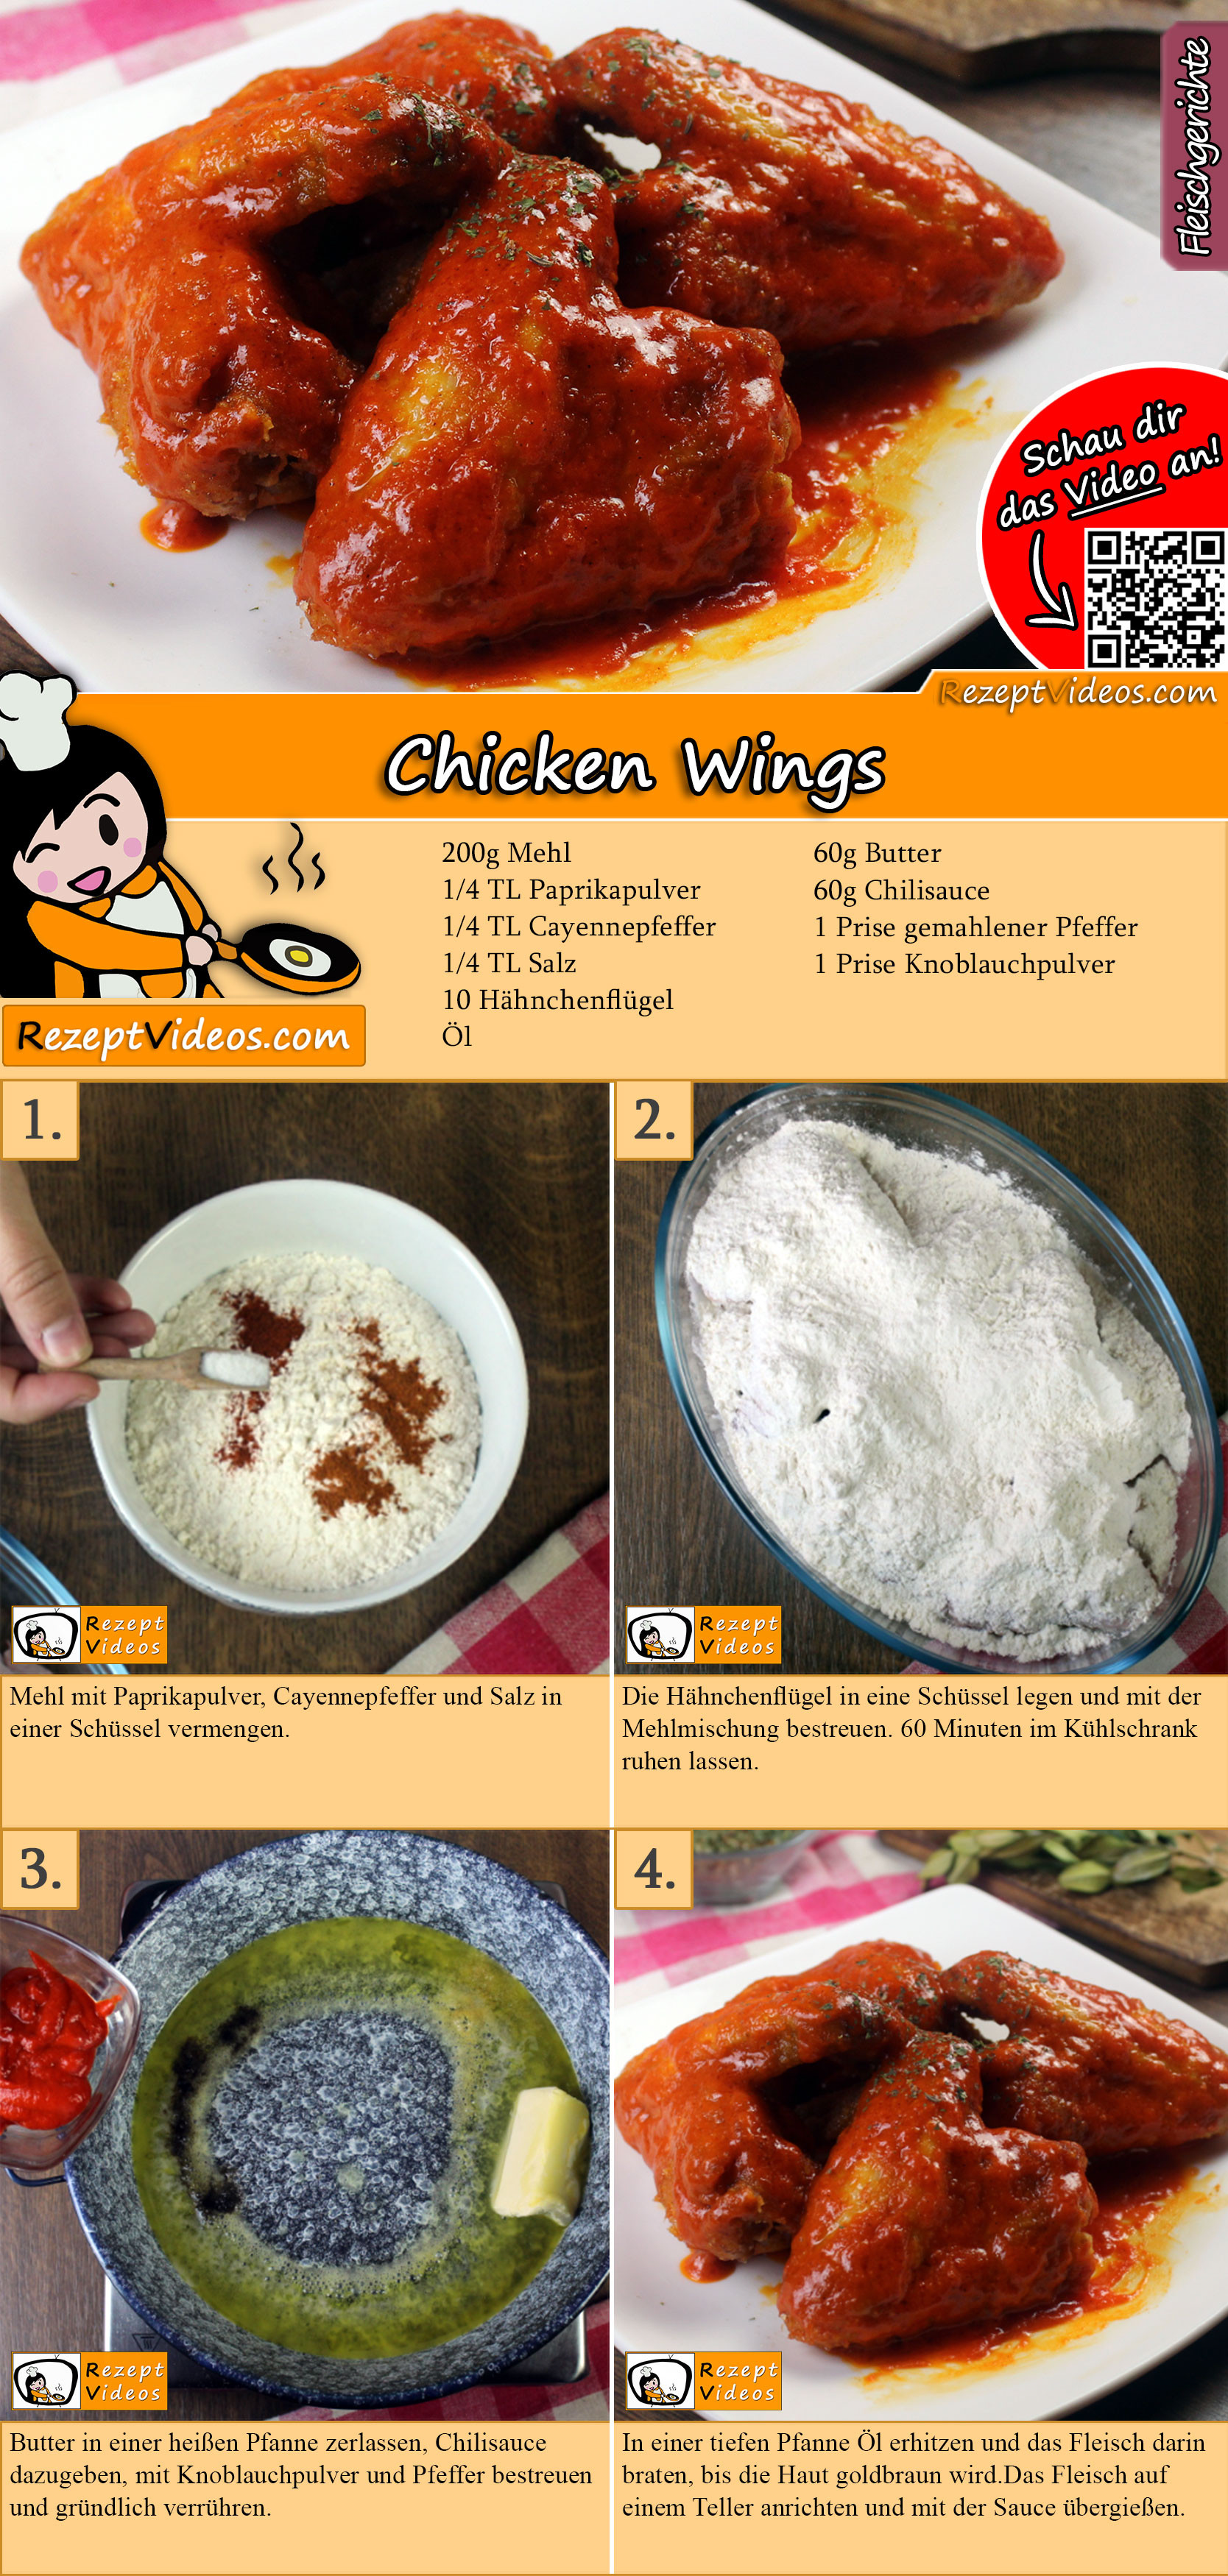 Chicken Wings Rezept mit Video